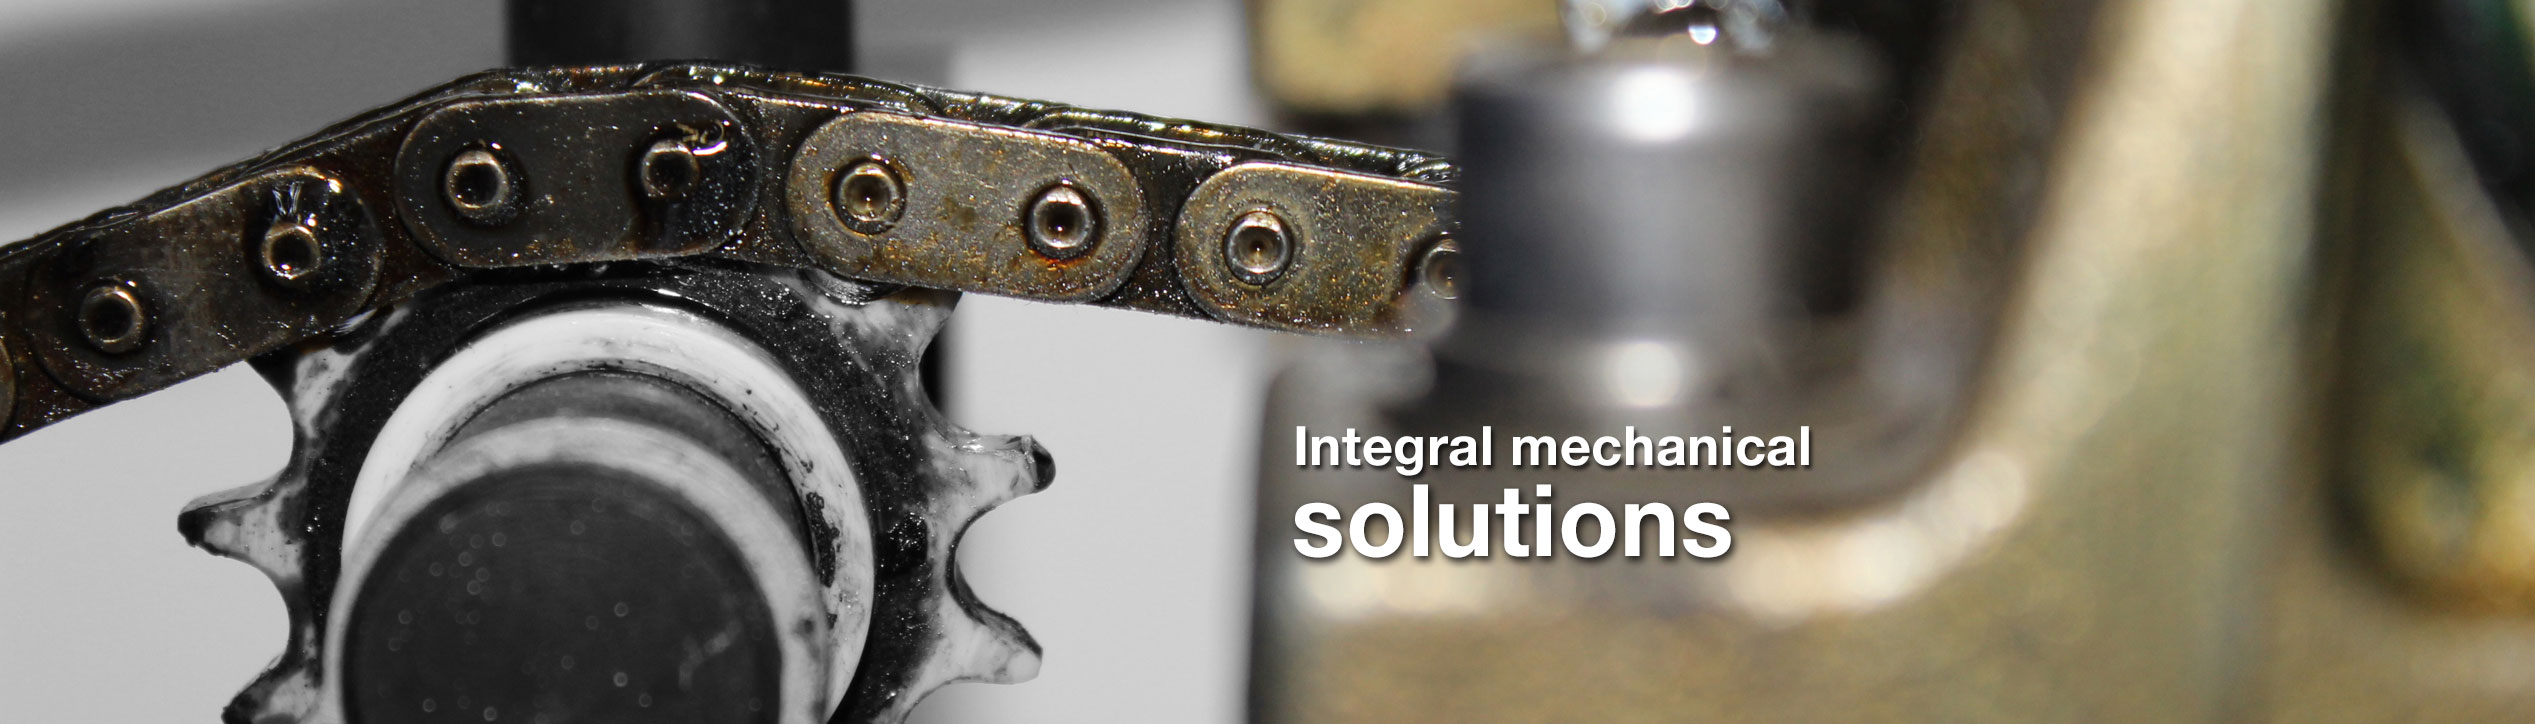 Integral mechanical solutions